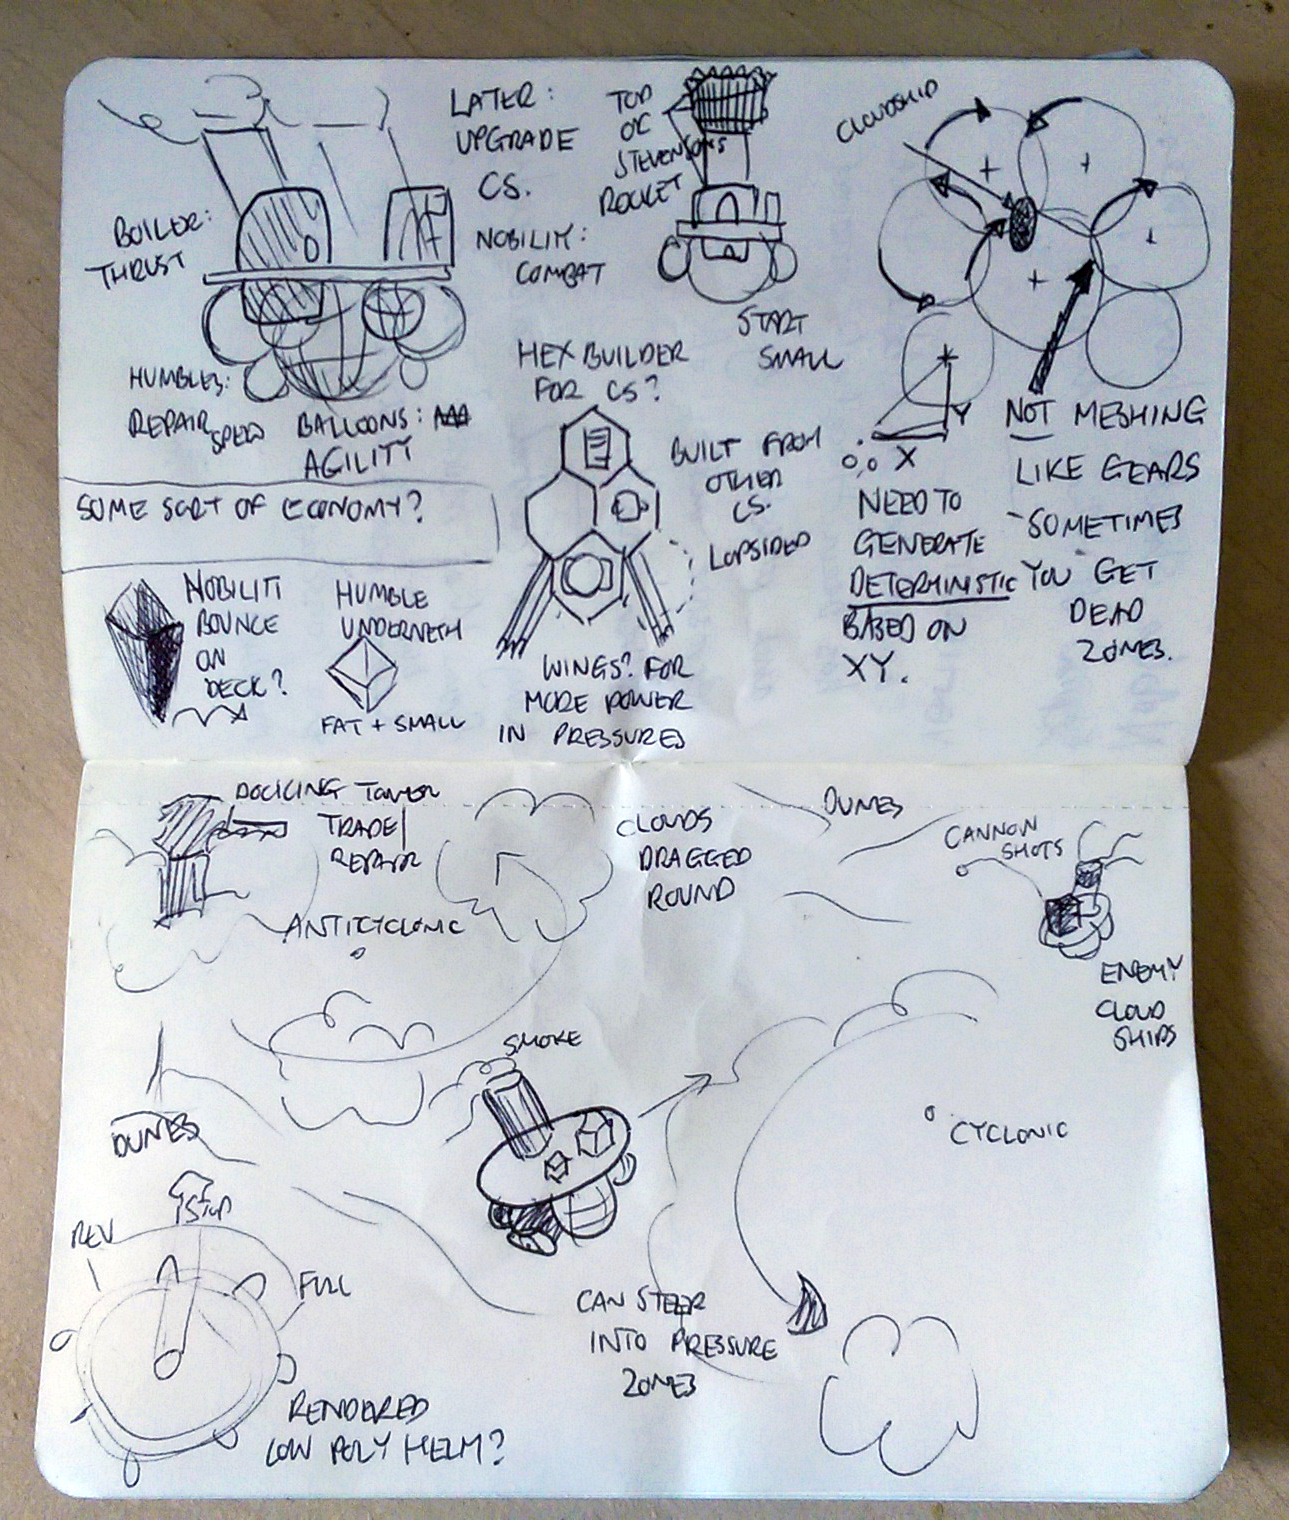 A scruffy set of scribbles that make up my design document